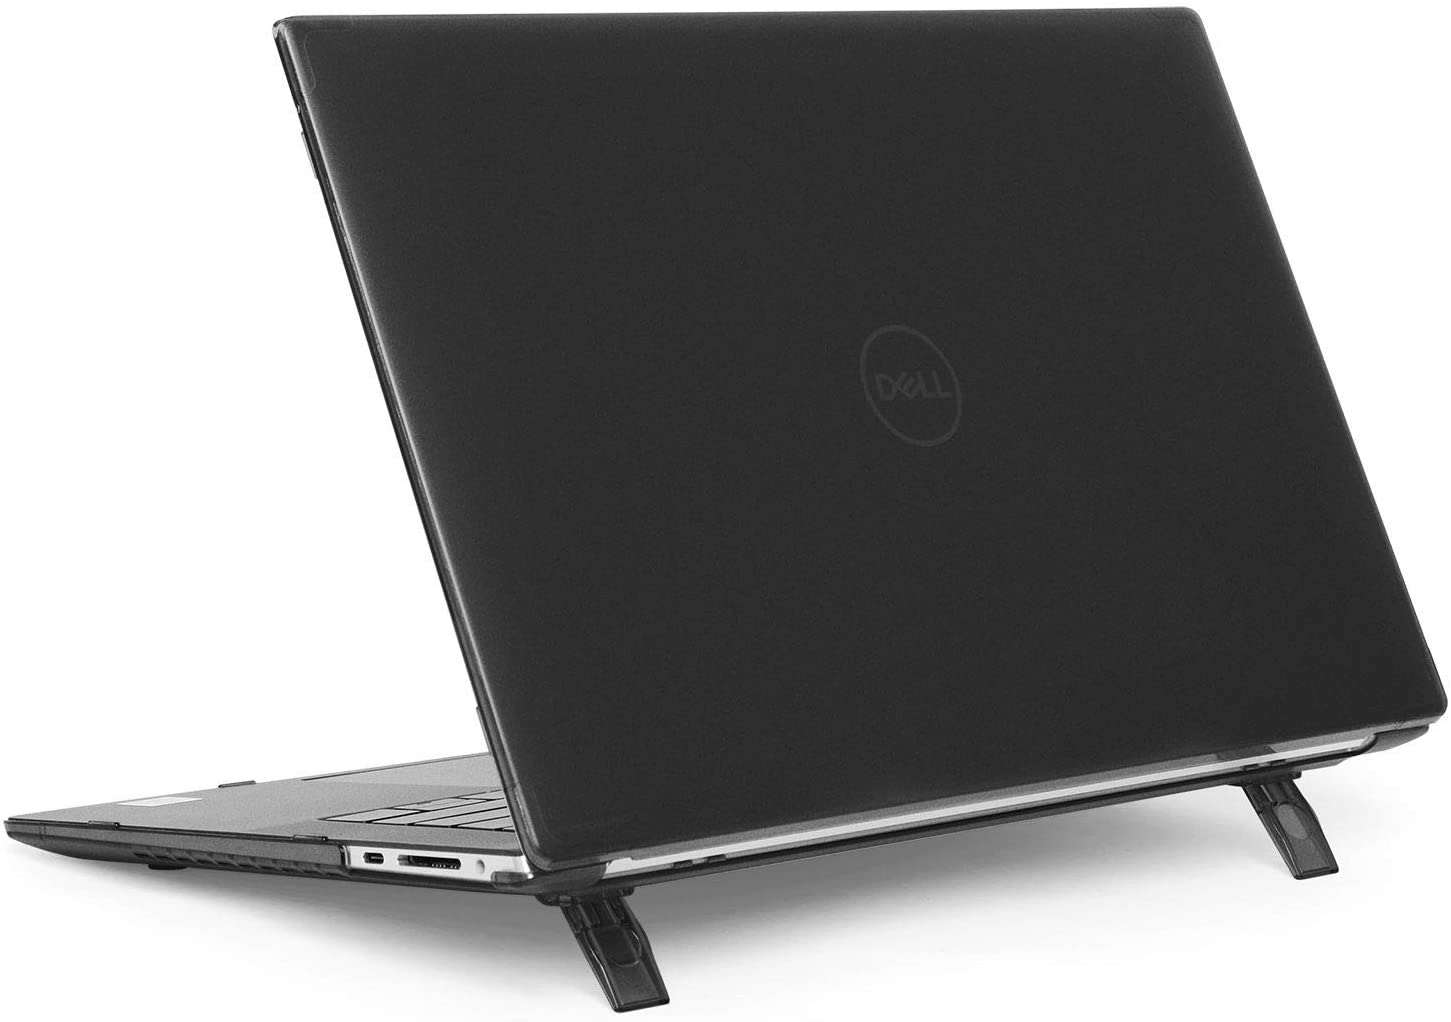 "mCover Hard Shell CASE for New 2020 15.6"" Dell XPS 15 9500 / Precision 5550 Series Laptop Computer (Black)"